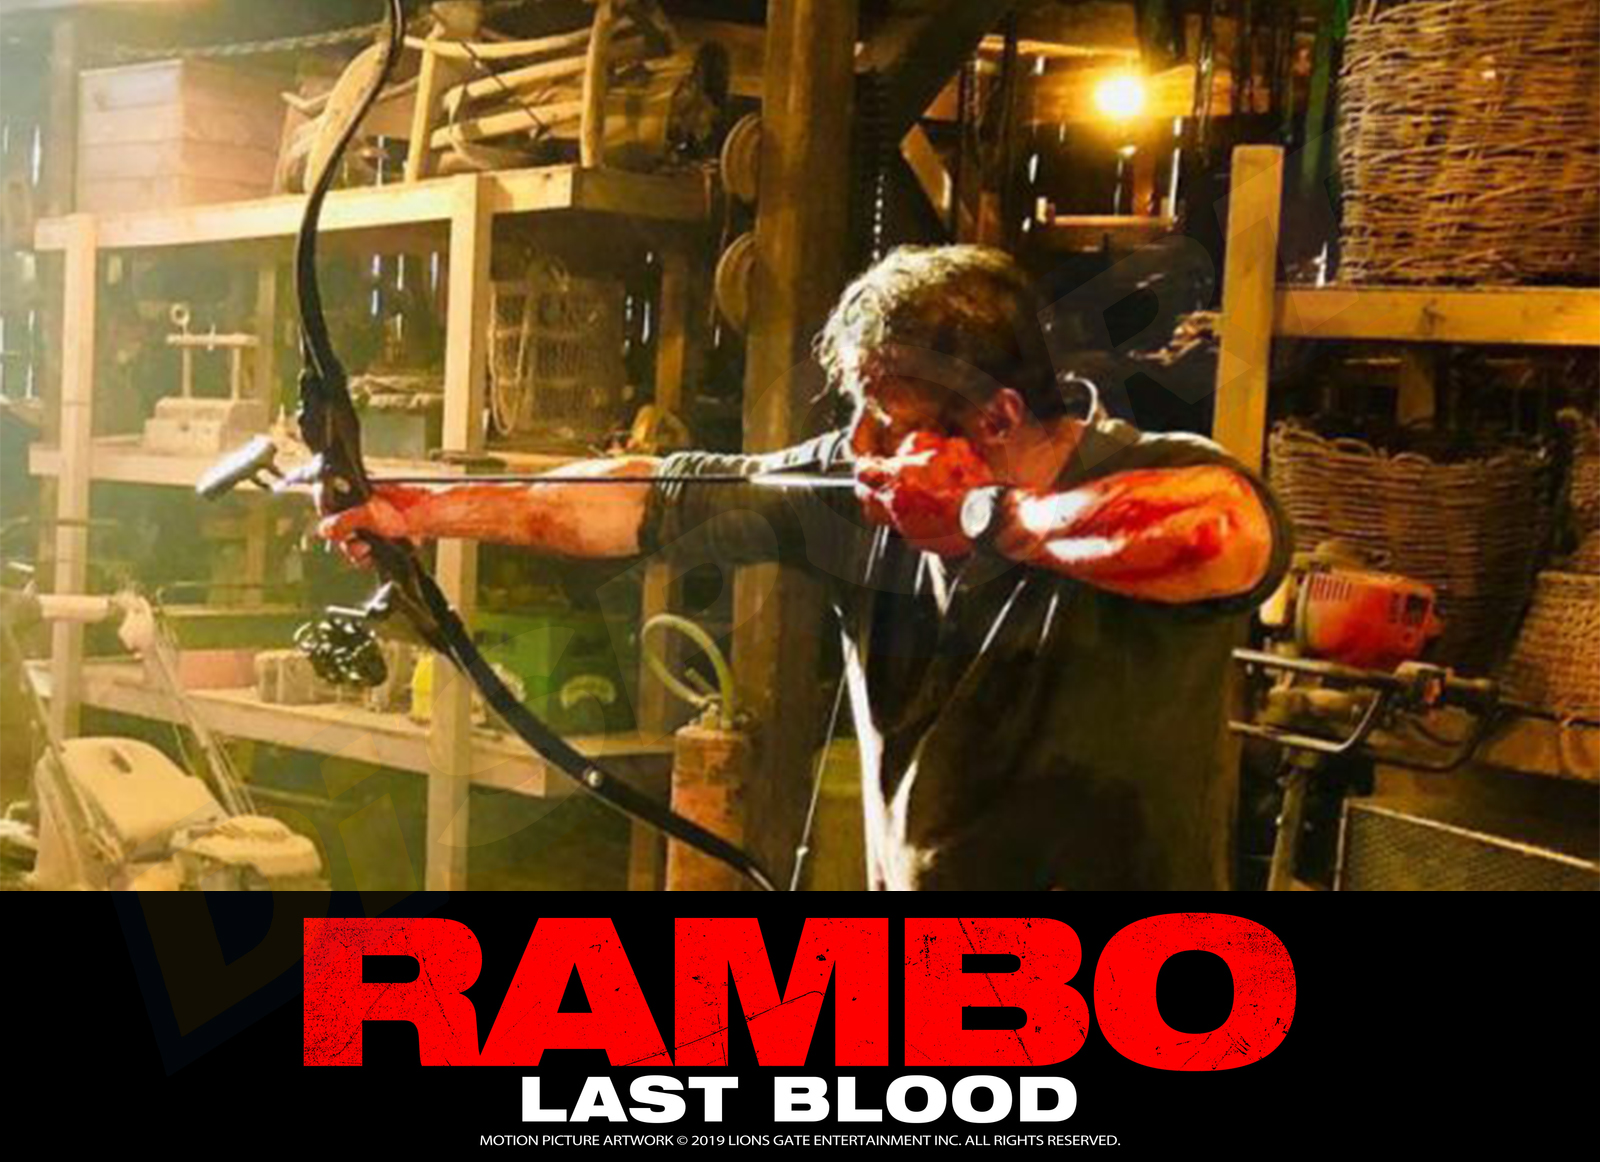 BEAR ARCO TRADIZIONALE FIELDBOW TD RAMBO LAST BLOOD LIMITED EDITION